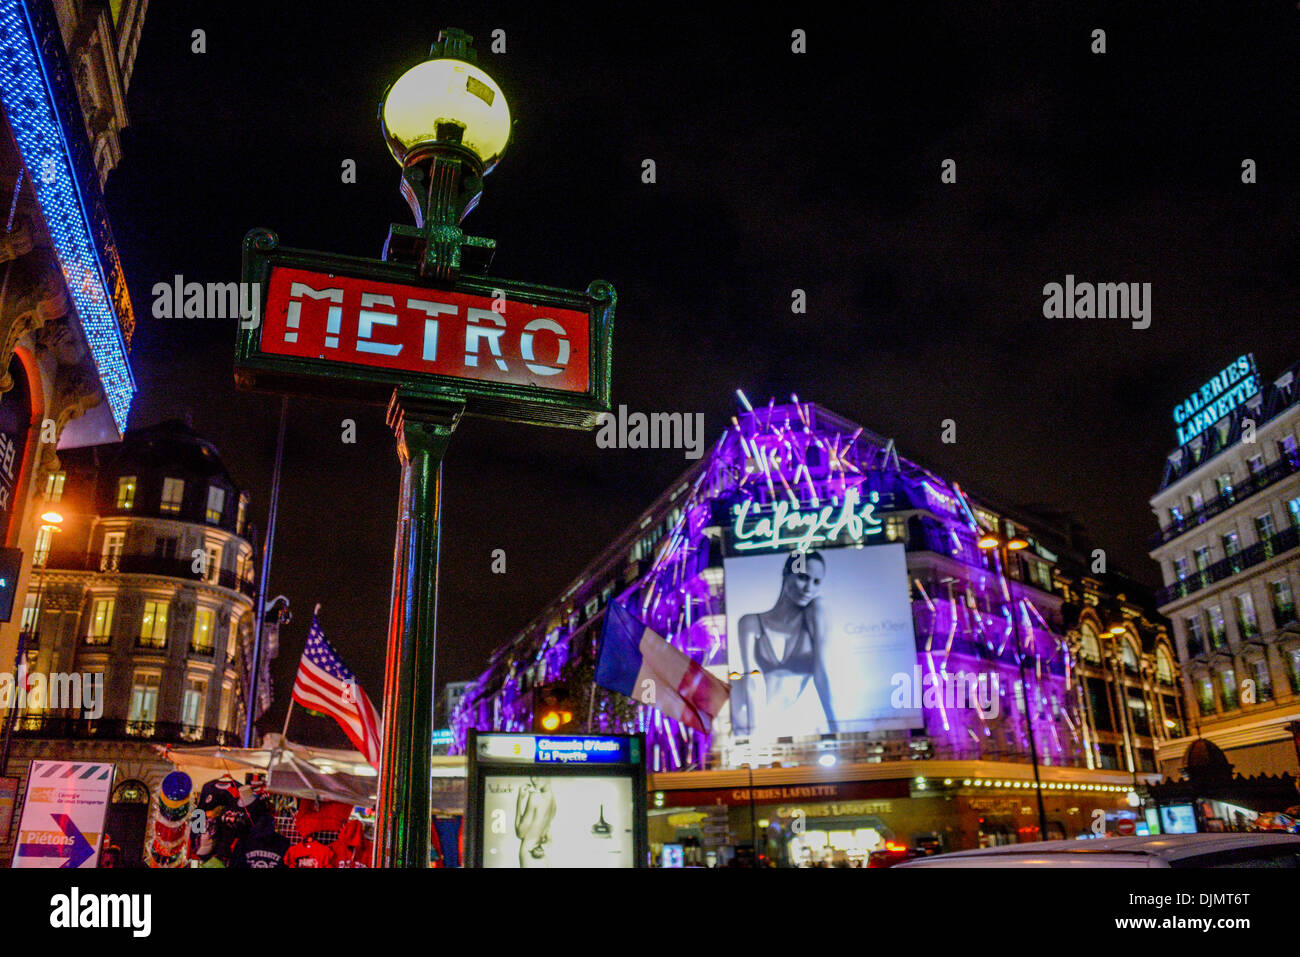 metro station chauss e d 39 antin la fayette and galeries lafayette on stock photo royalty free. Black Bedroom Furniture Sets. Home Design Ideas